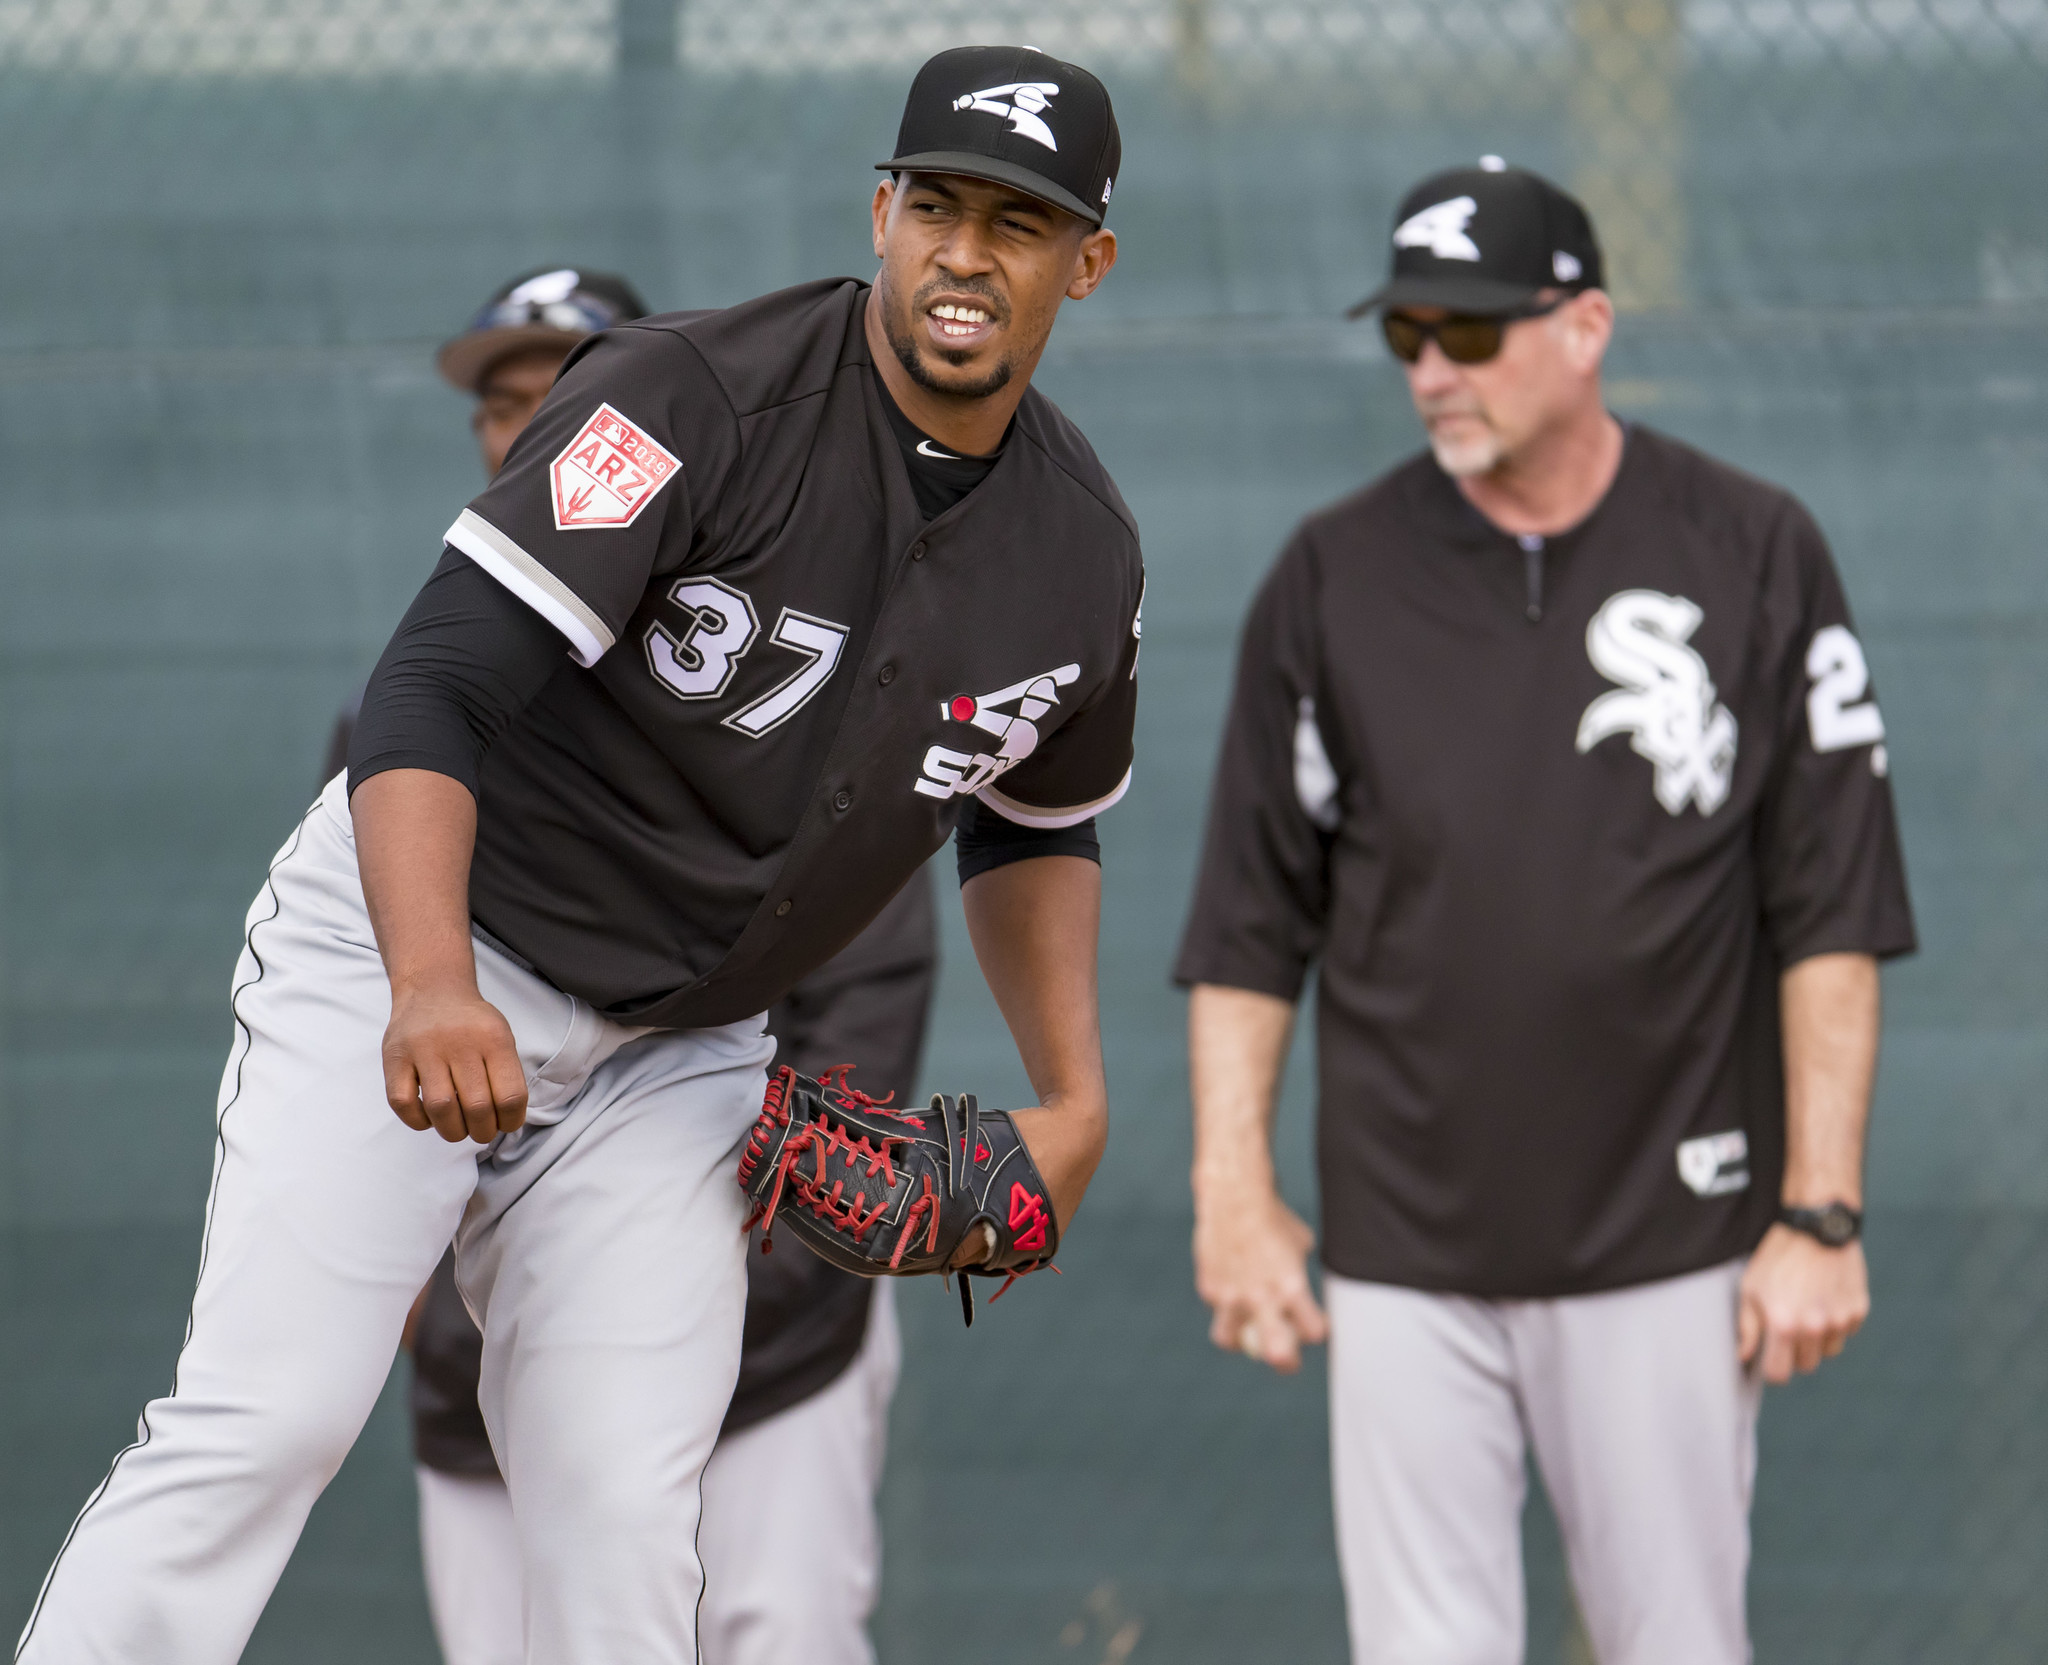 5 takeaways from White Sox camp, including prospects emerging and a clubhouse boombox that caters to all tastes